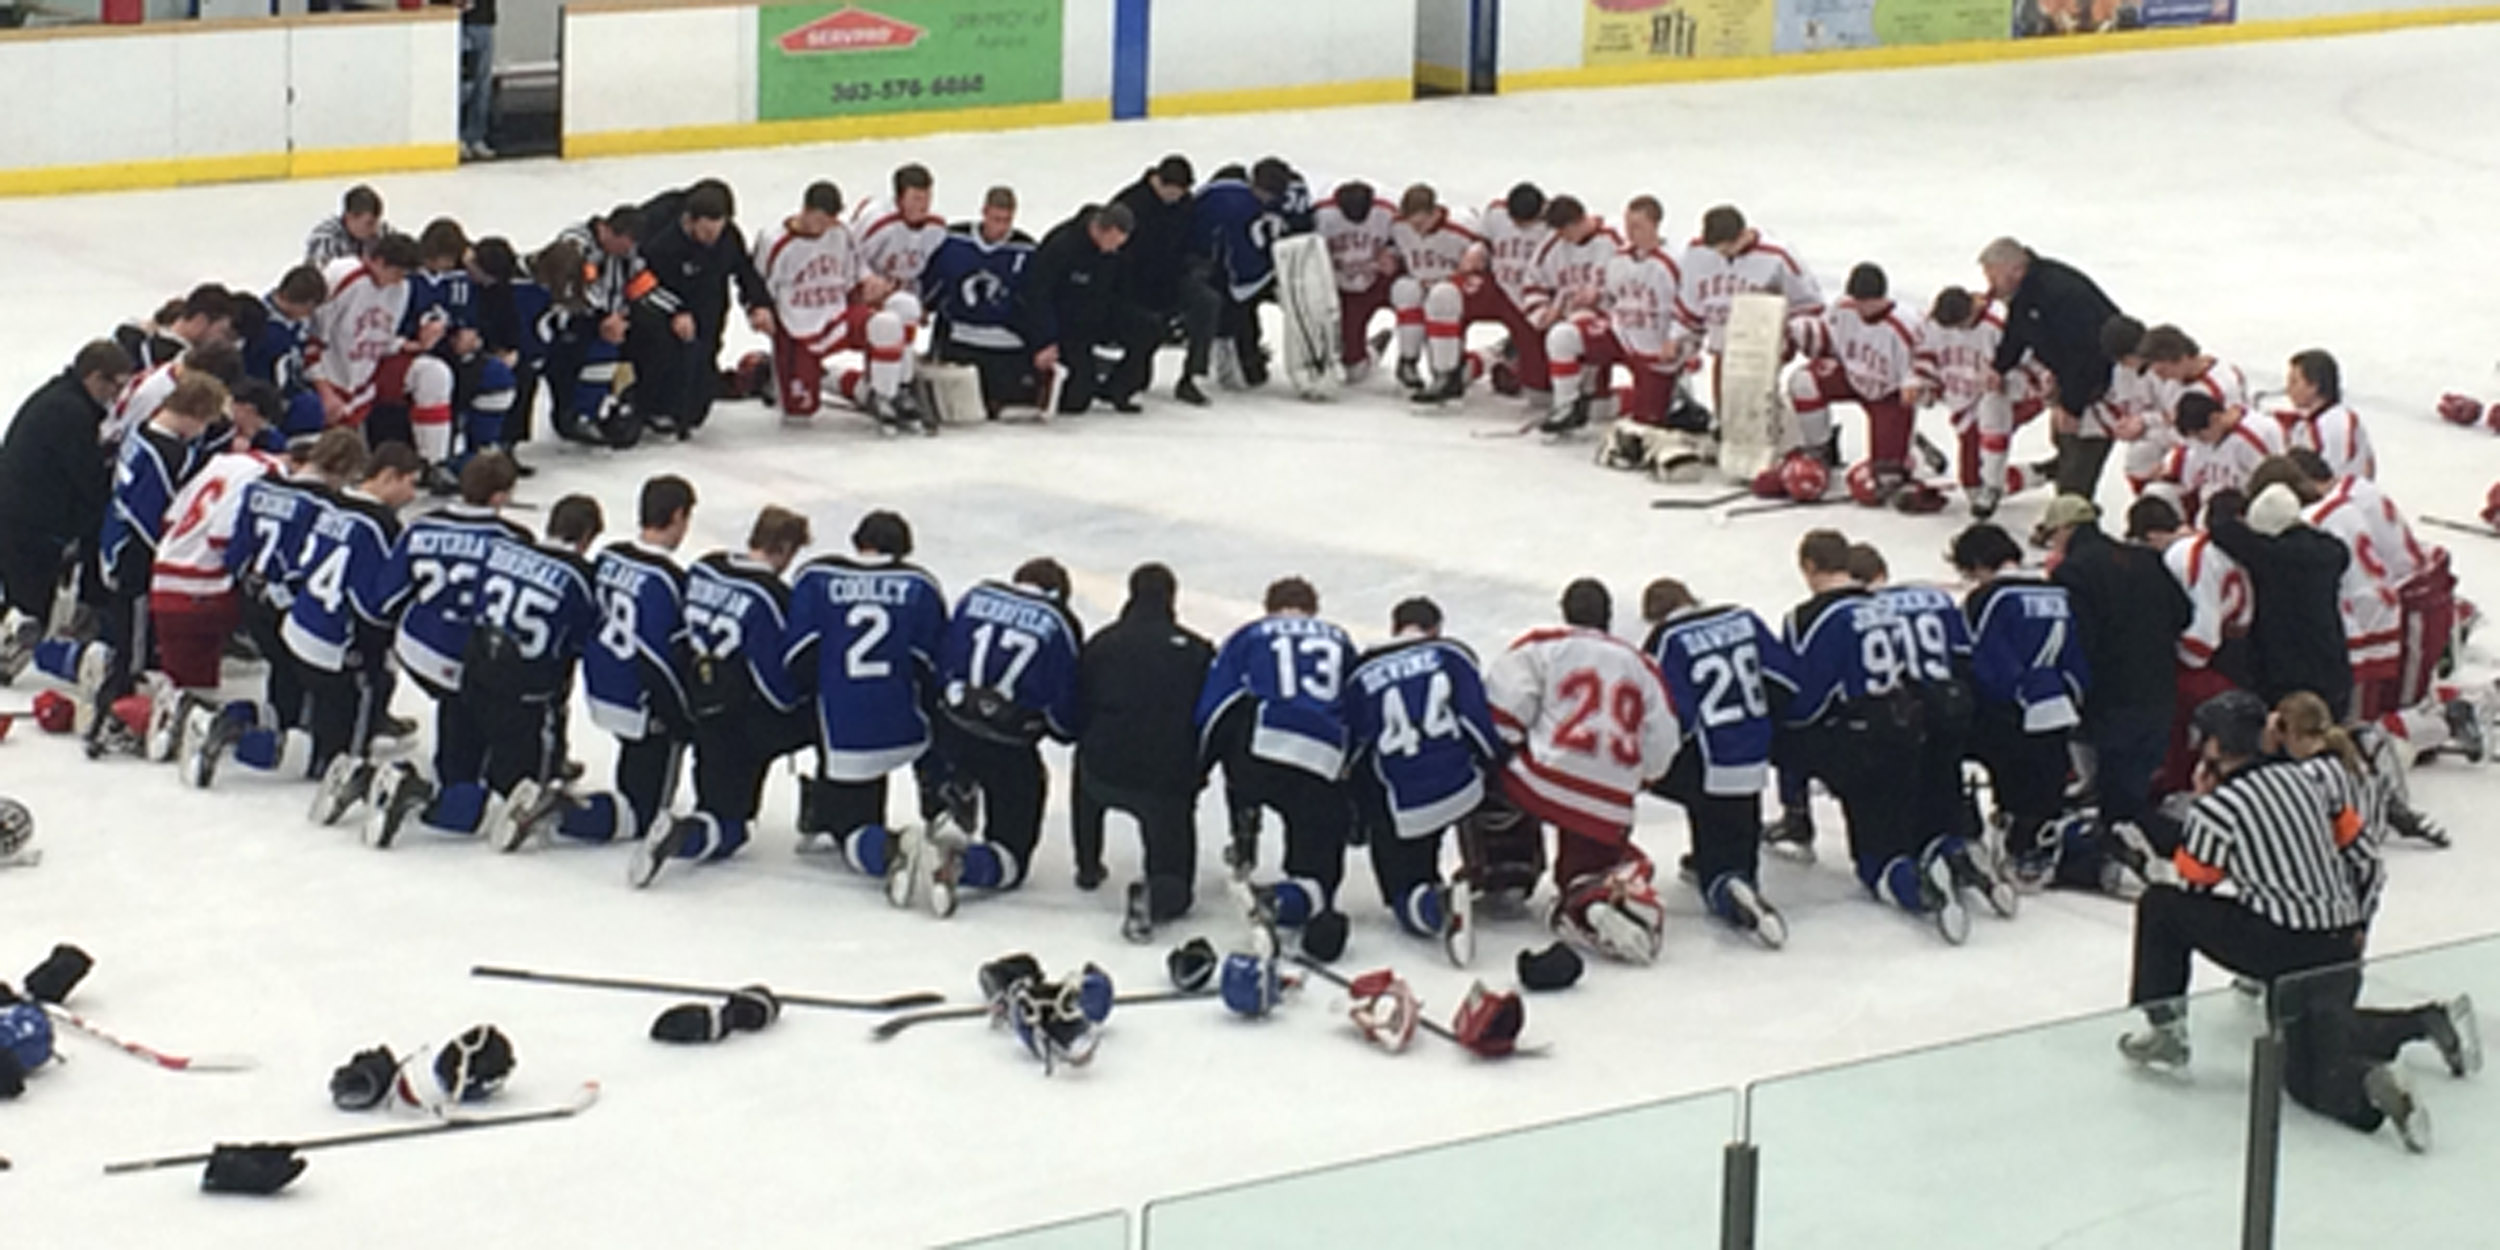 RCS and Regis Jesuit take a moment to pray following the 2015 postseason contest